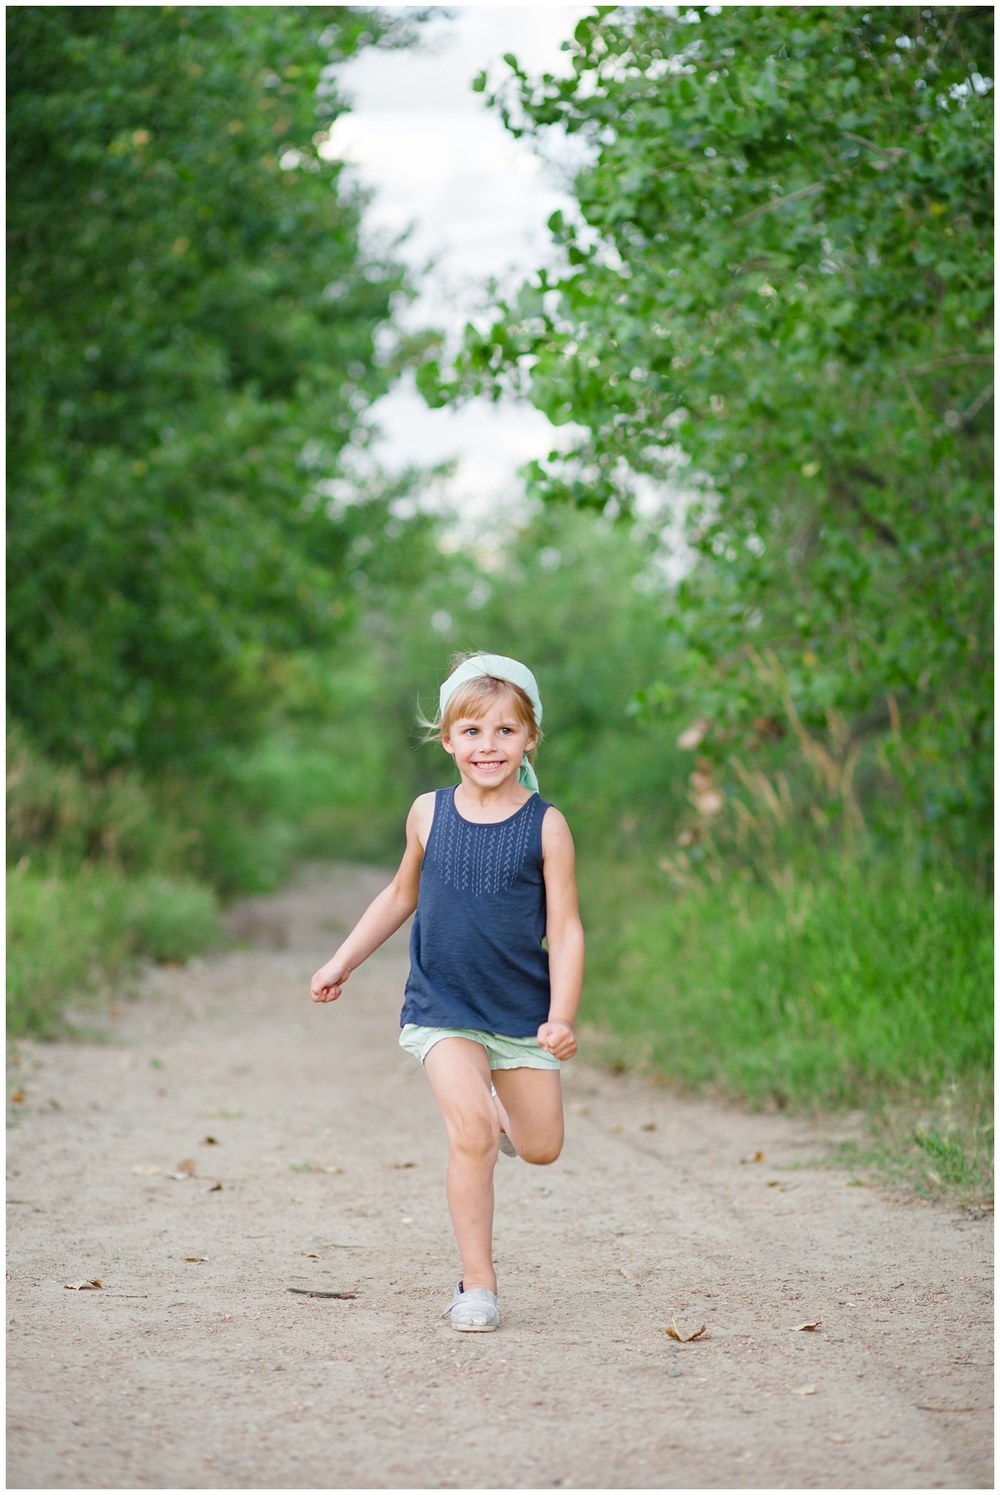 20150728FamilySunderlandJessica035_fort collins family photographer.jpg